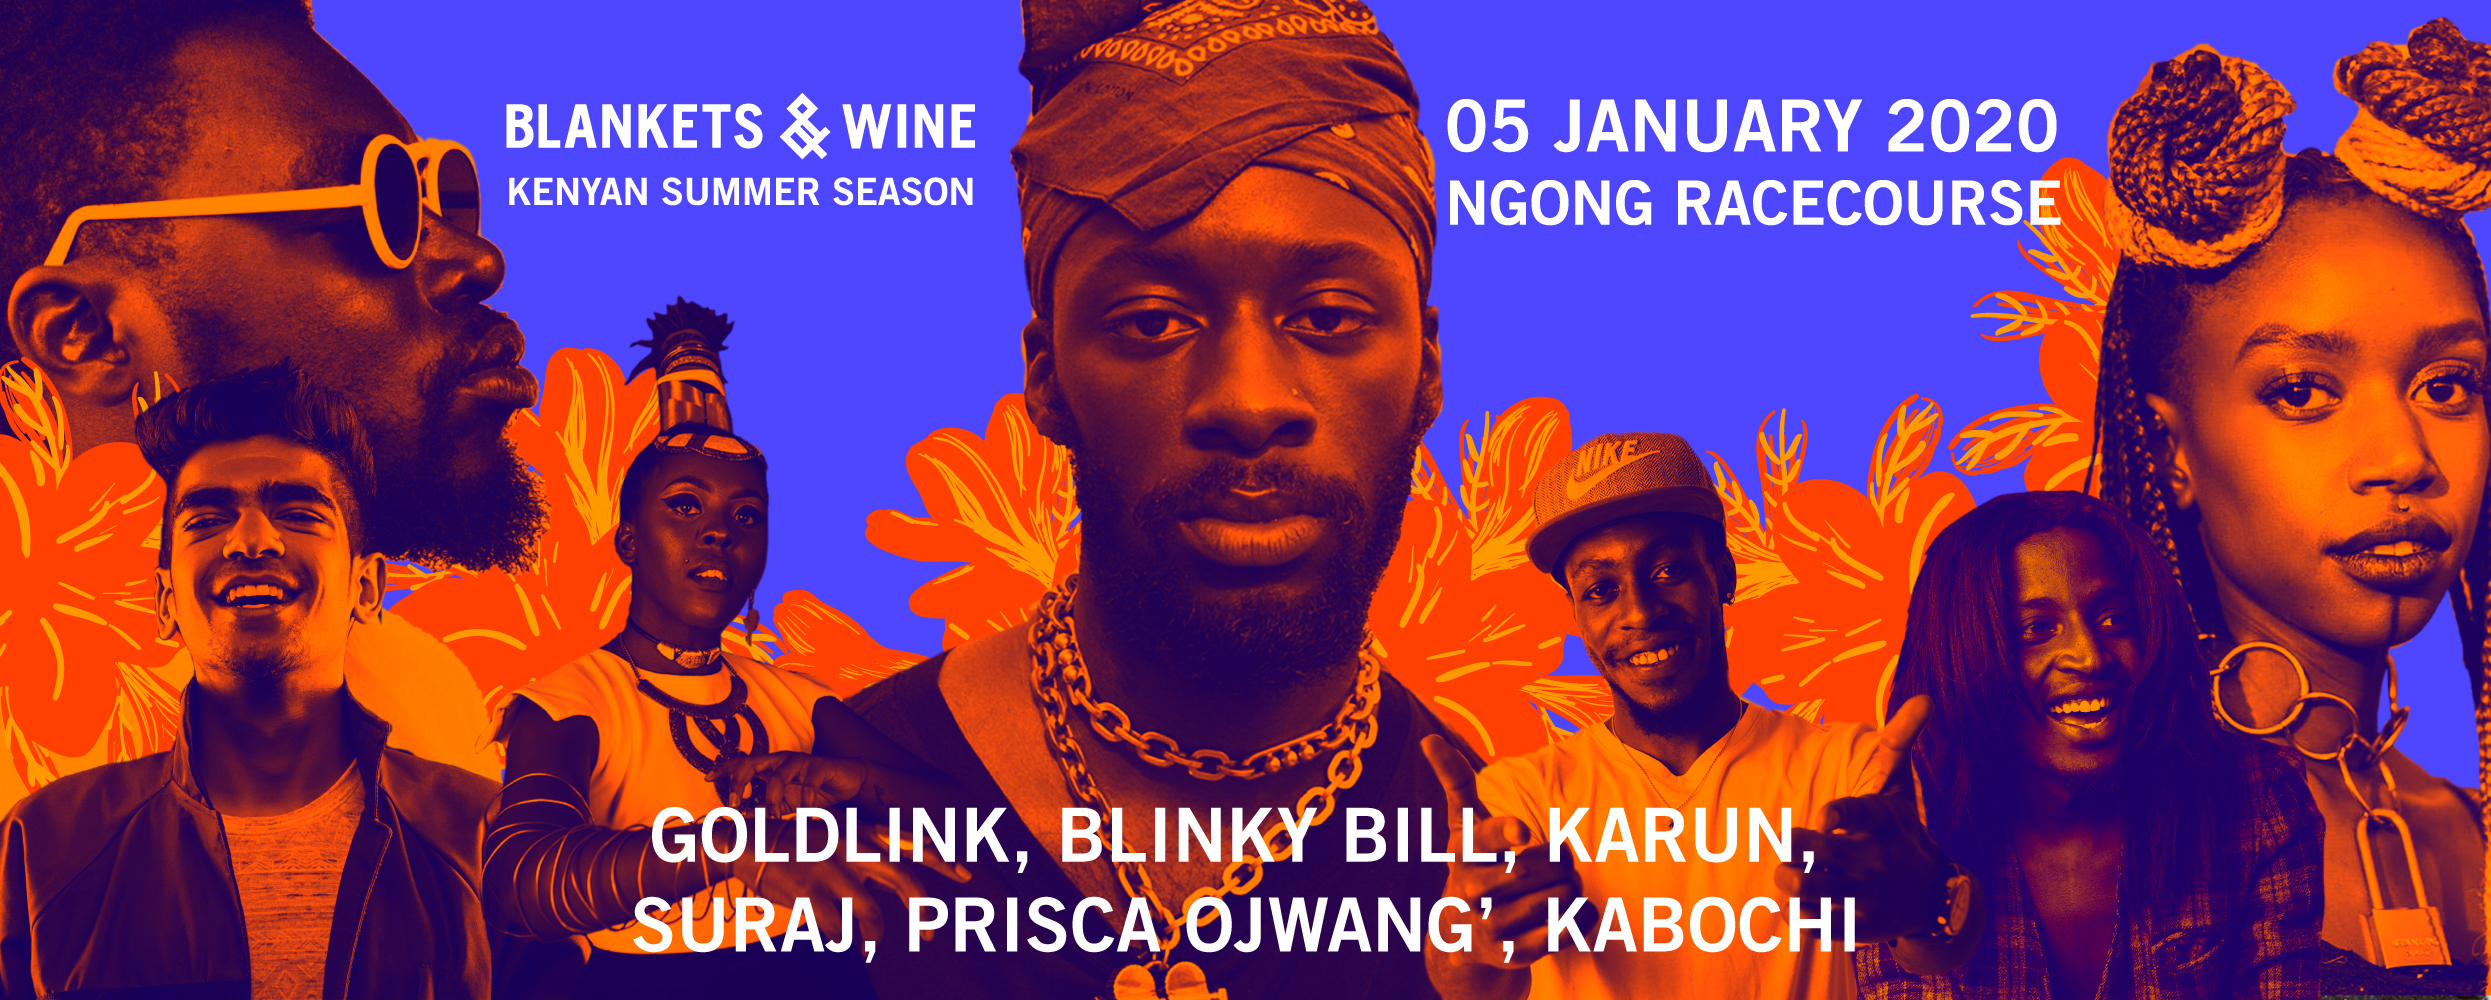 blankets-wine-kenyan-summer-edition